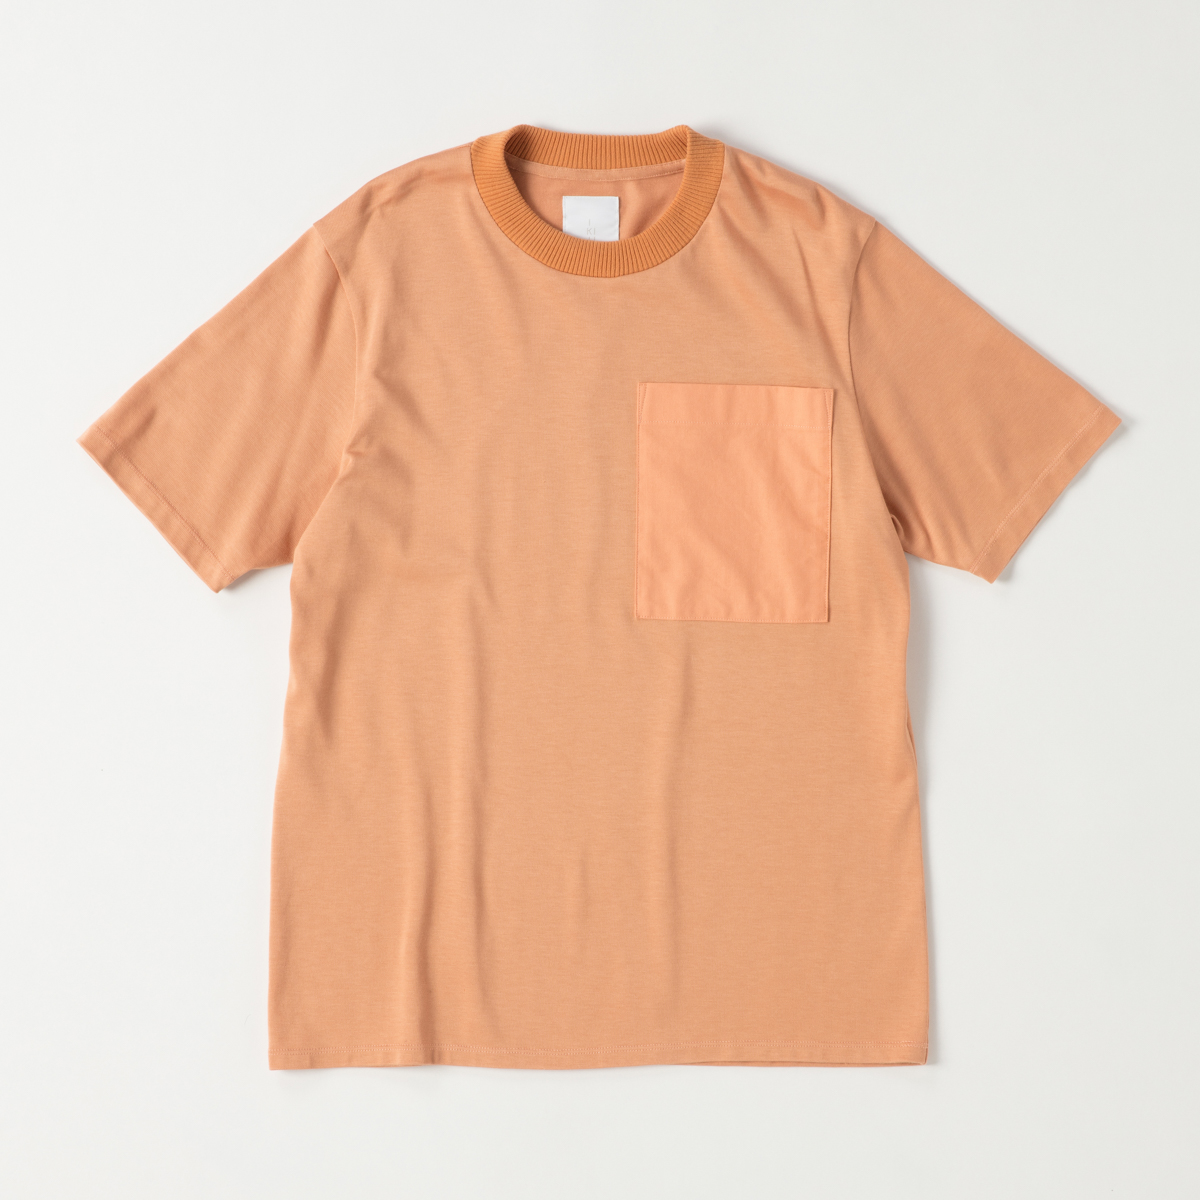 IKIJI - Big Pocket T-shirts